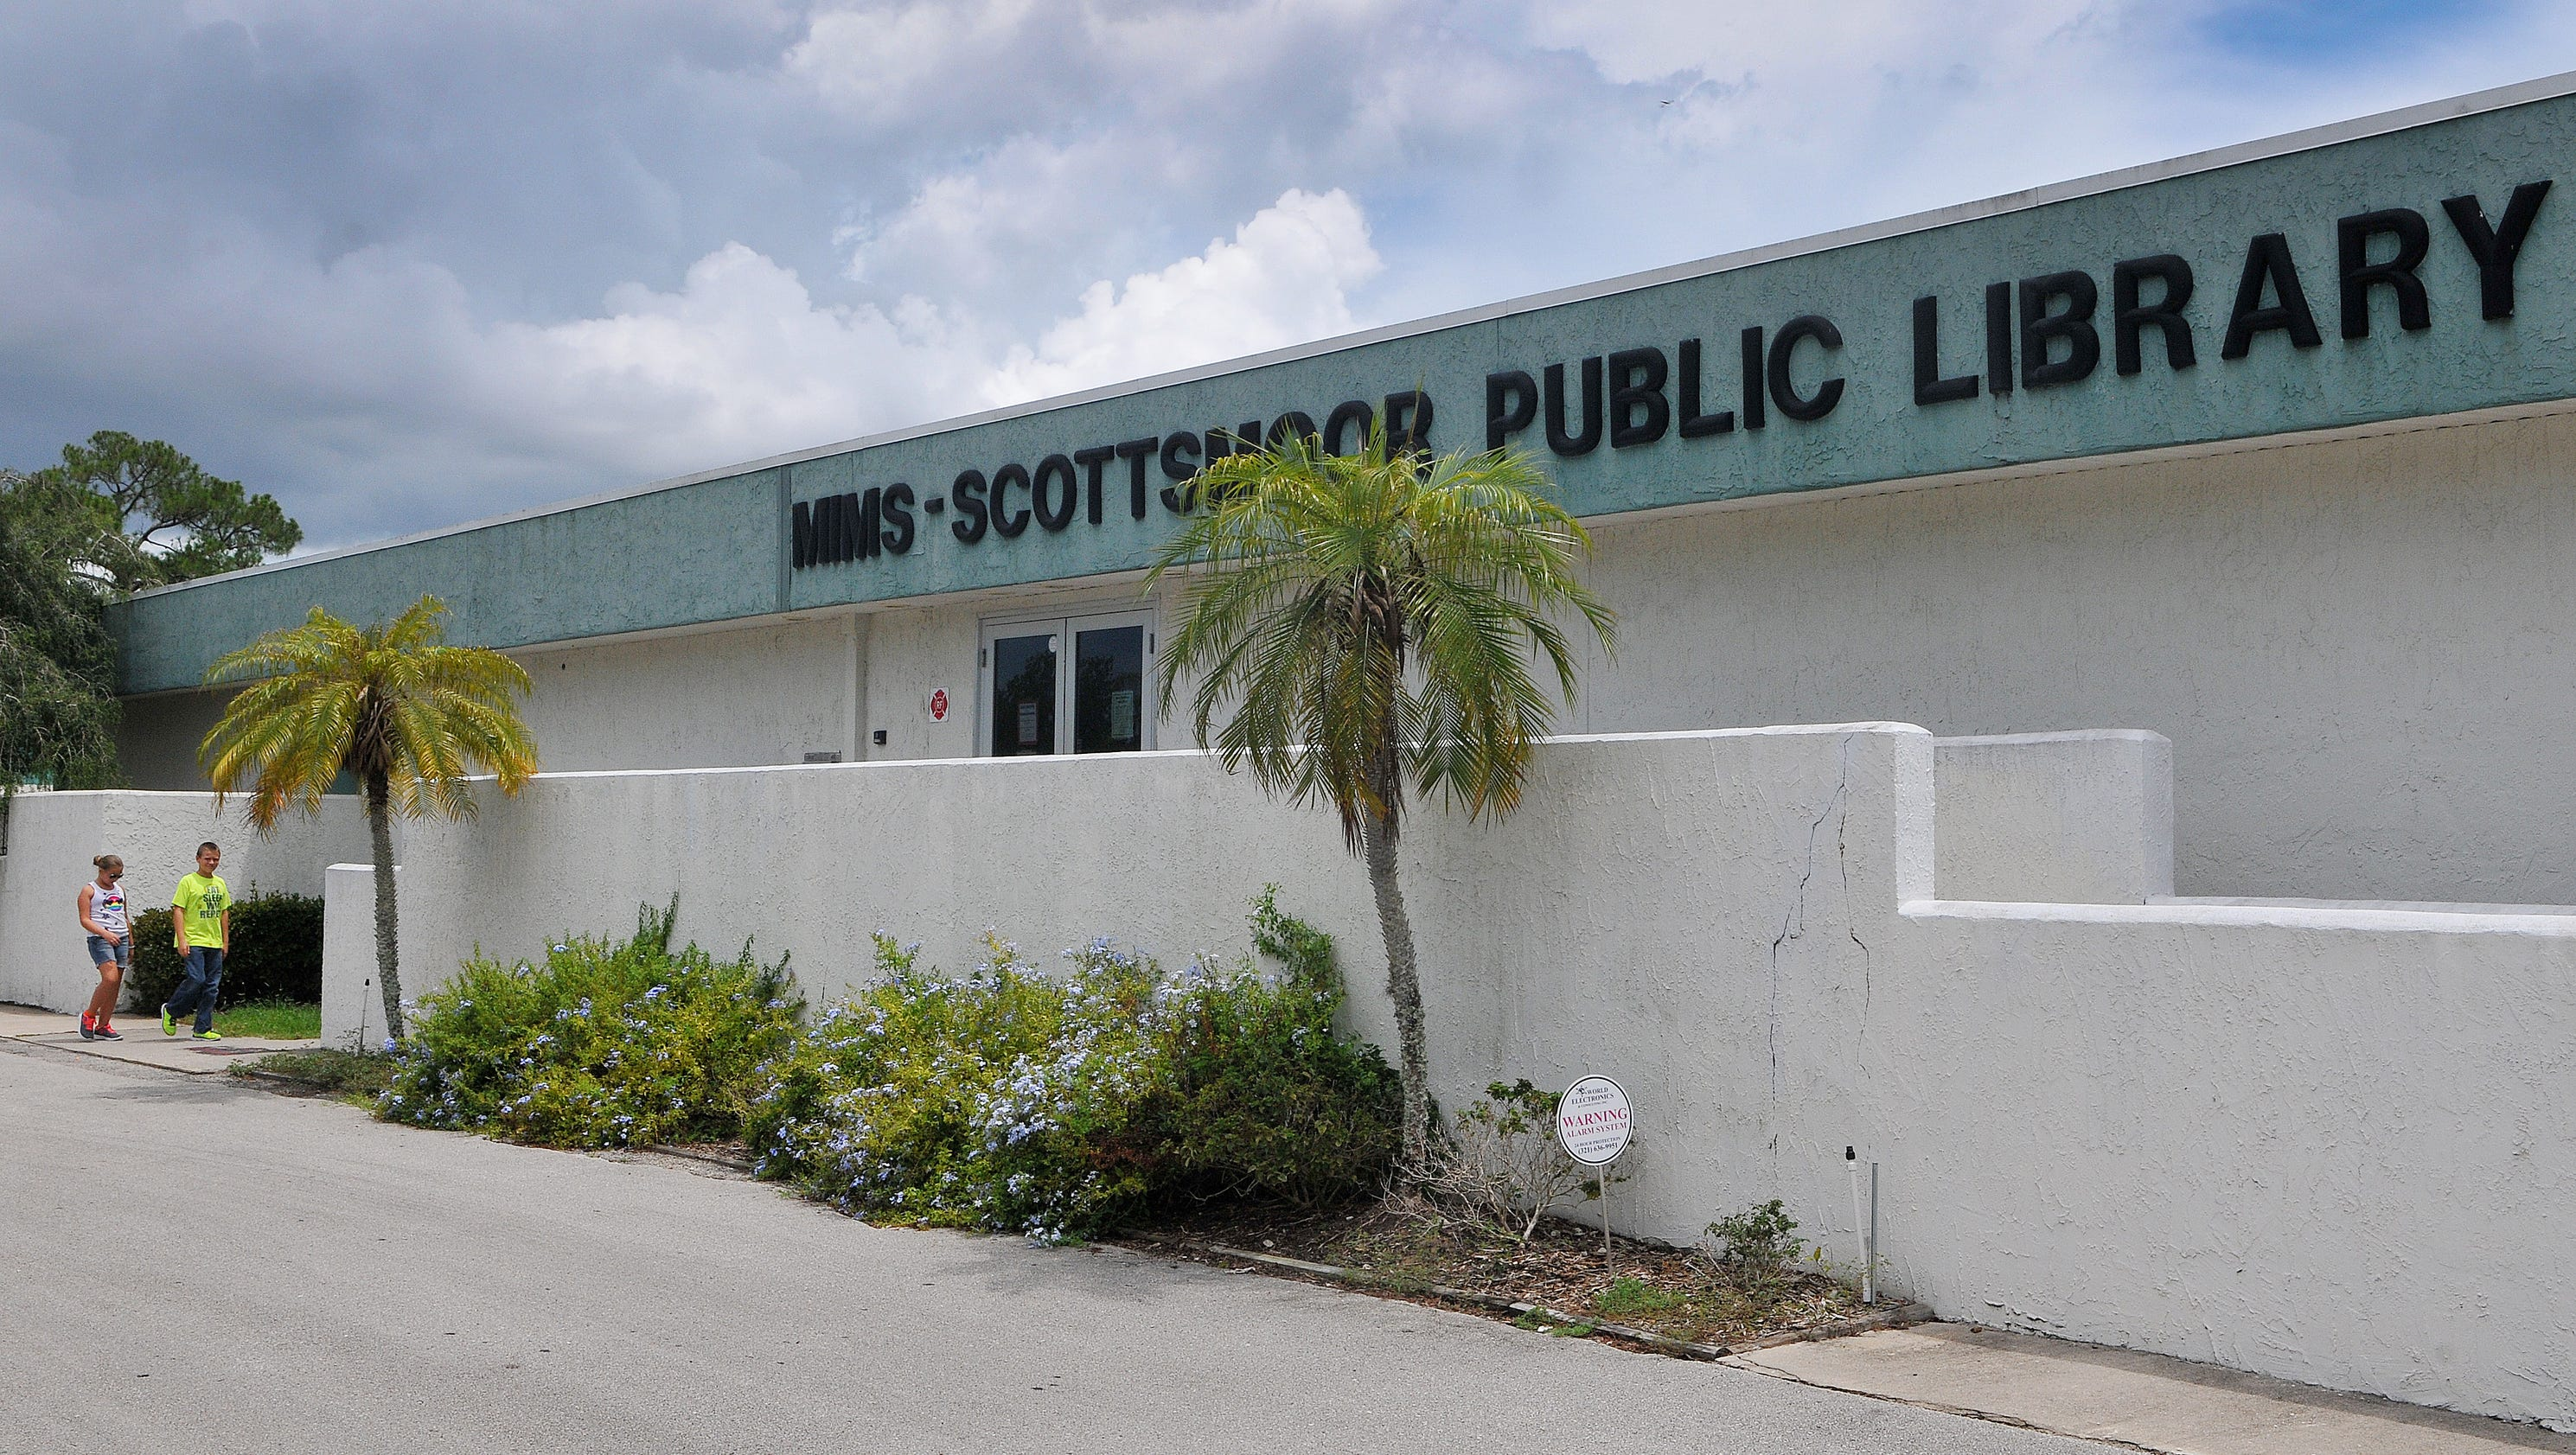 scottsmoor chat Find a real estate agent in scottsmoor, fl who will answer any questions you have about buying or selling a home in scottsmoor contact a scottsmoor.